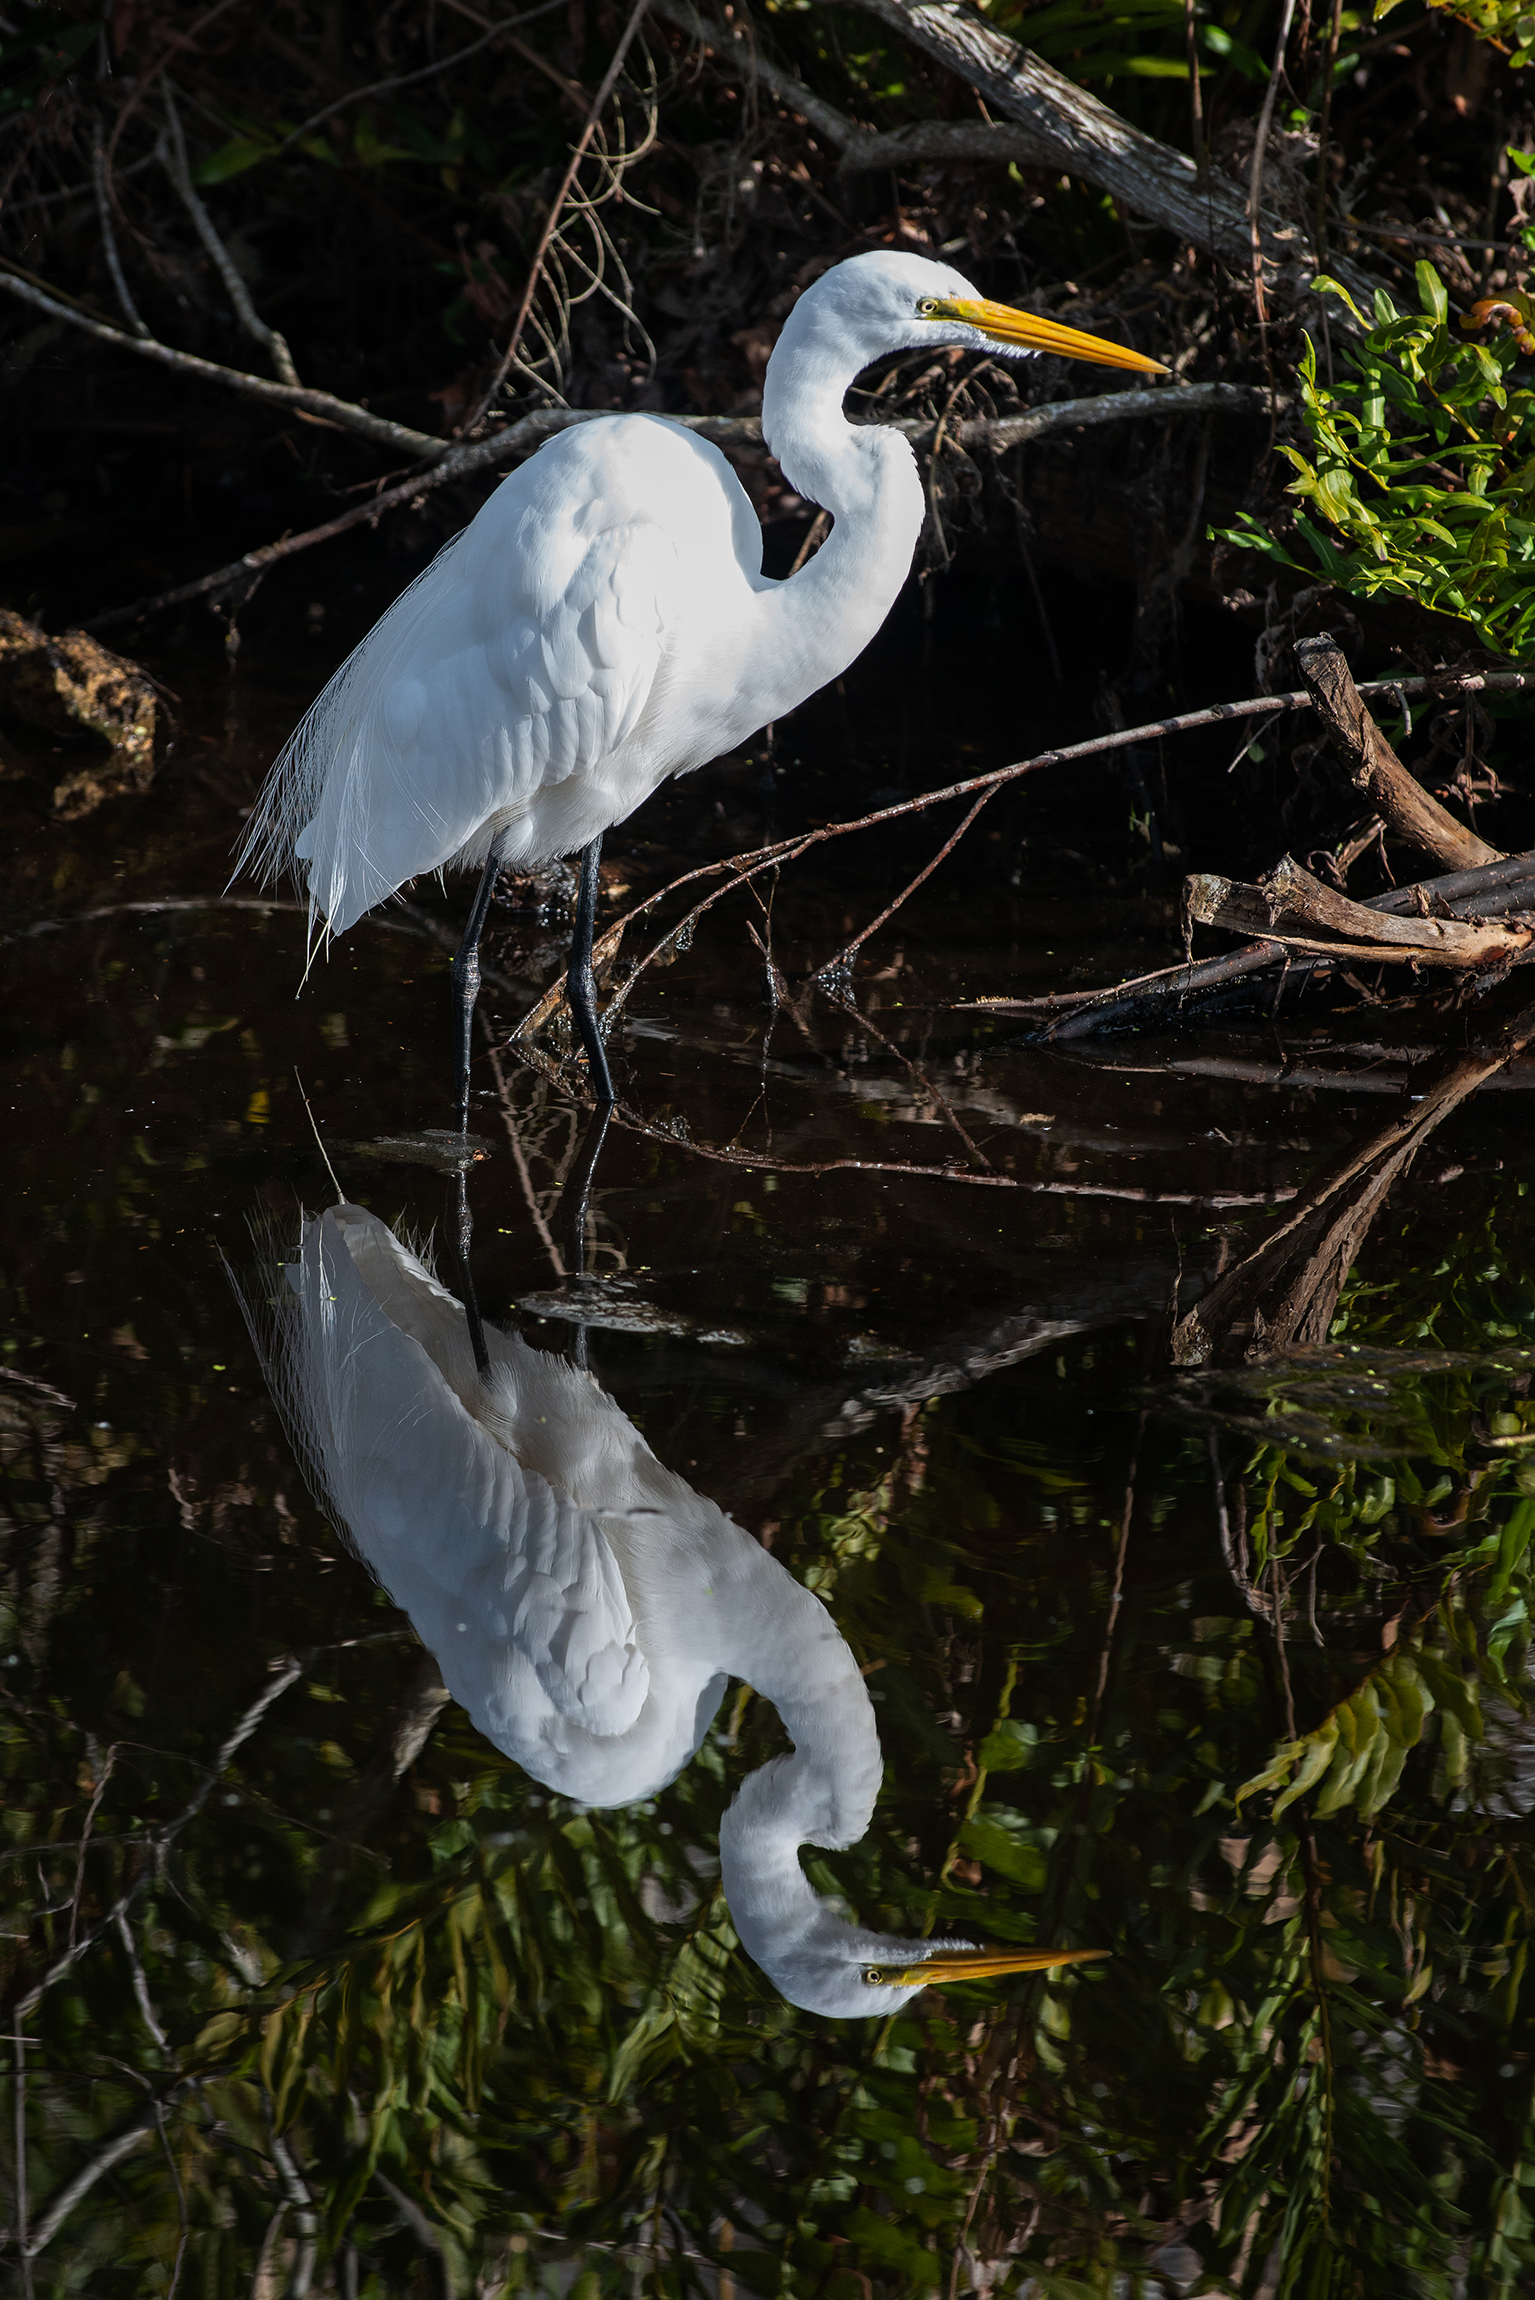 #greategret #egret, #birdphotography, #nikon, #pelicanbayflorida, #naples, #florida, #reflection, #mirror